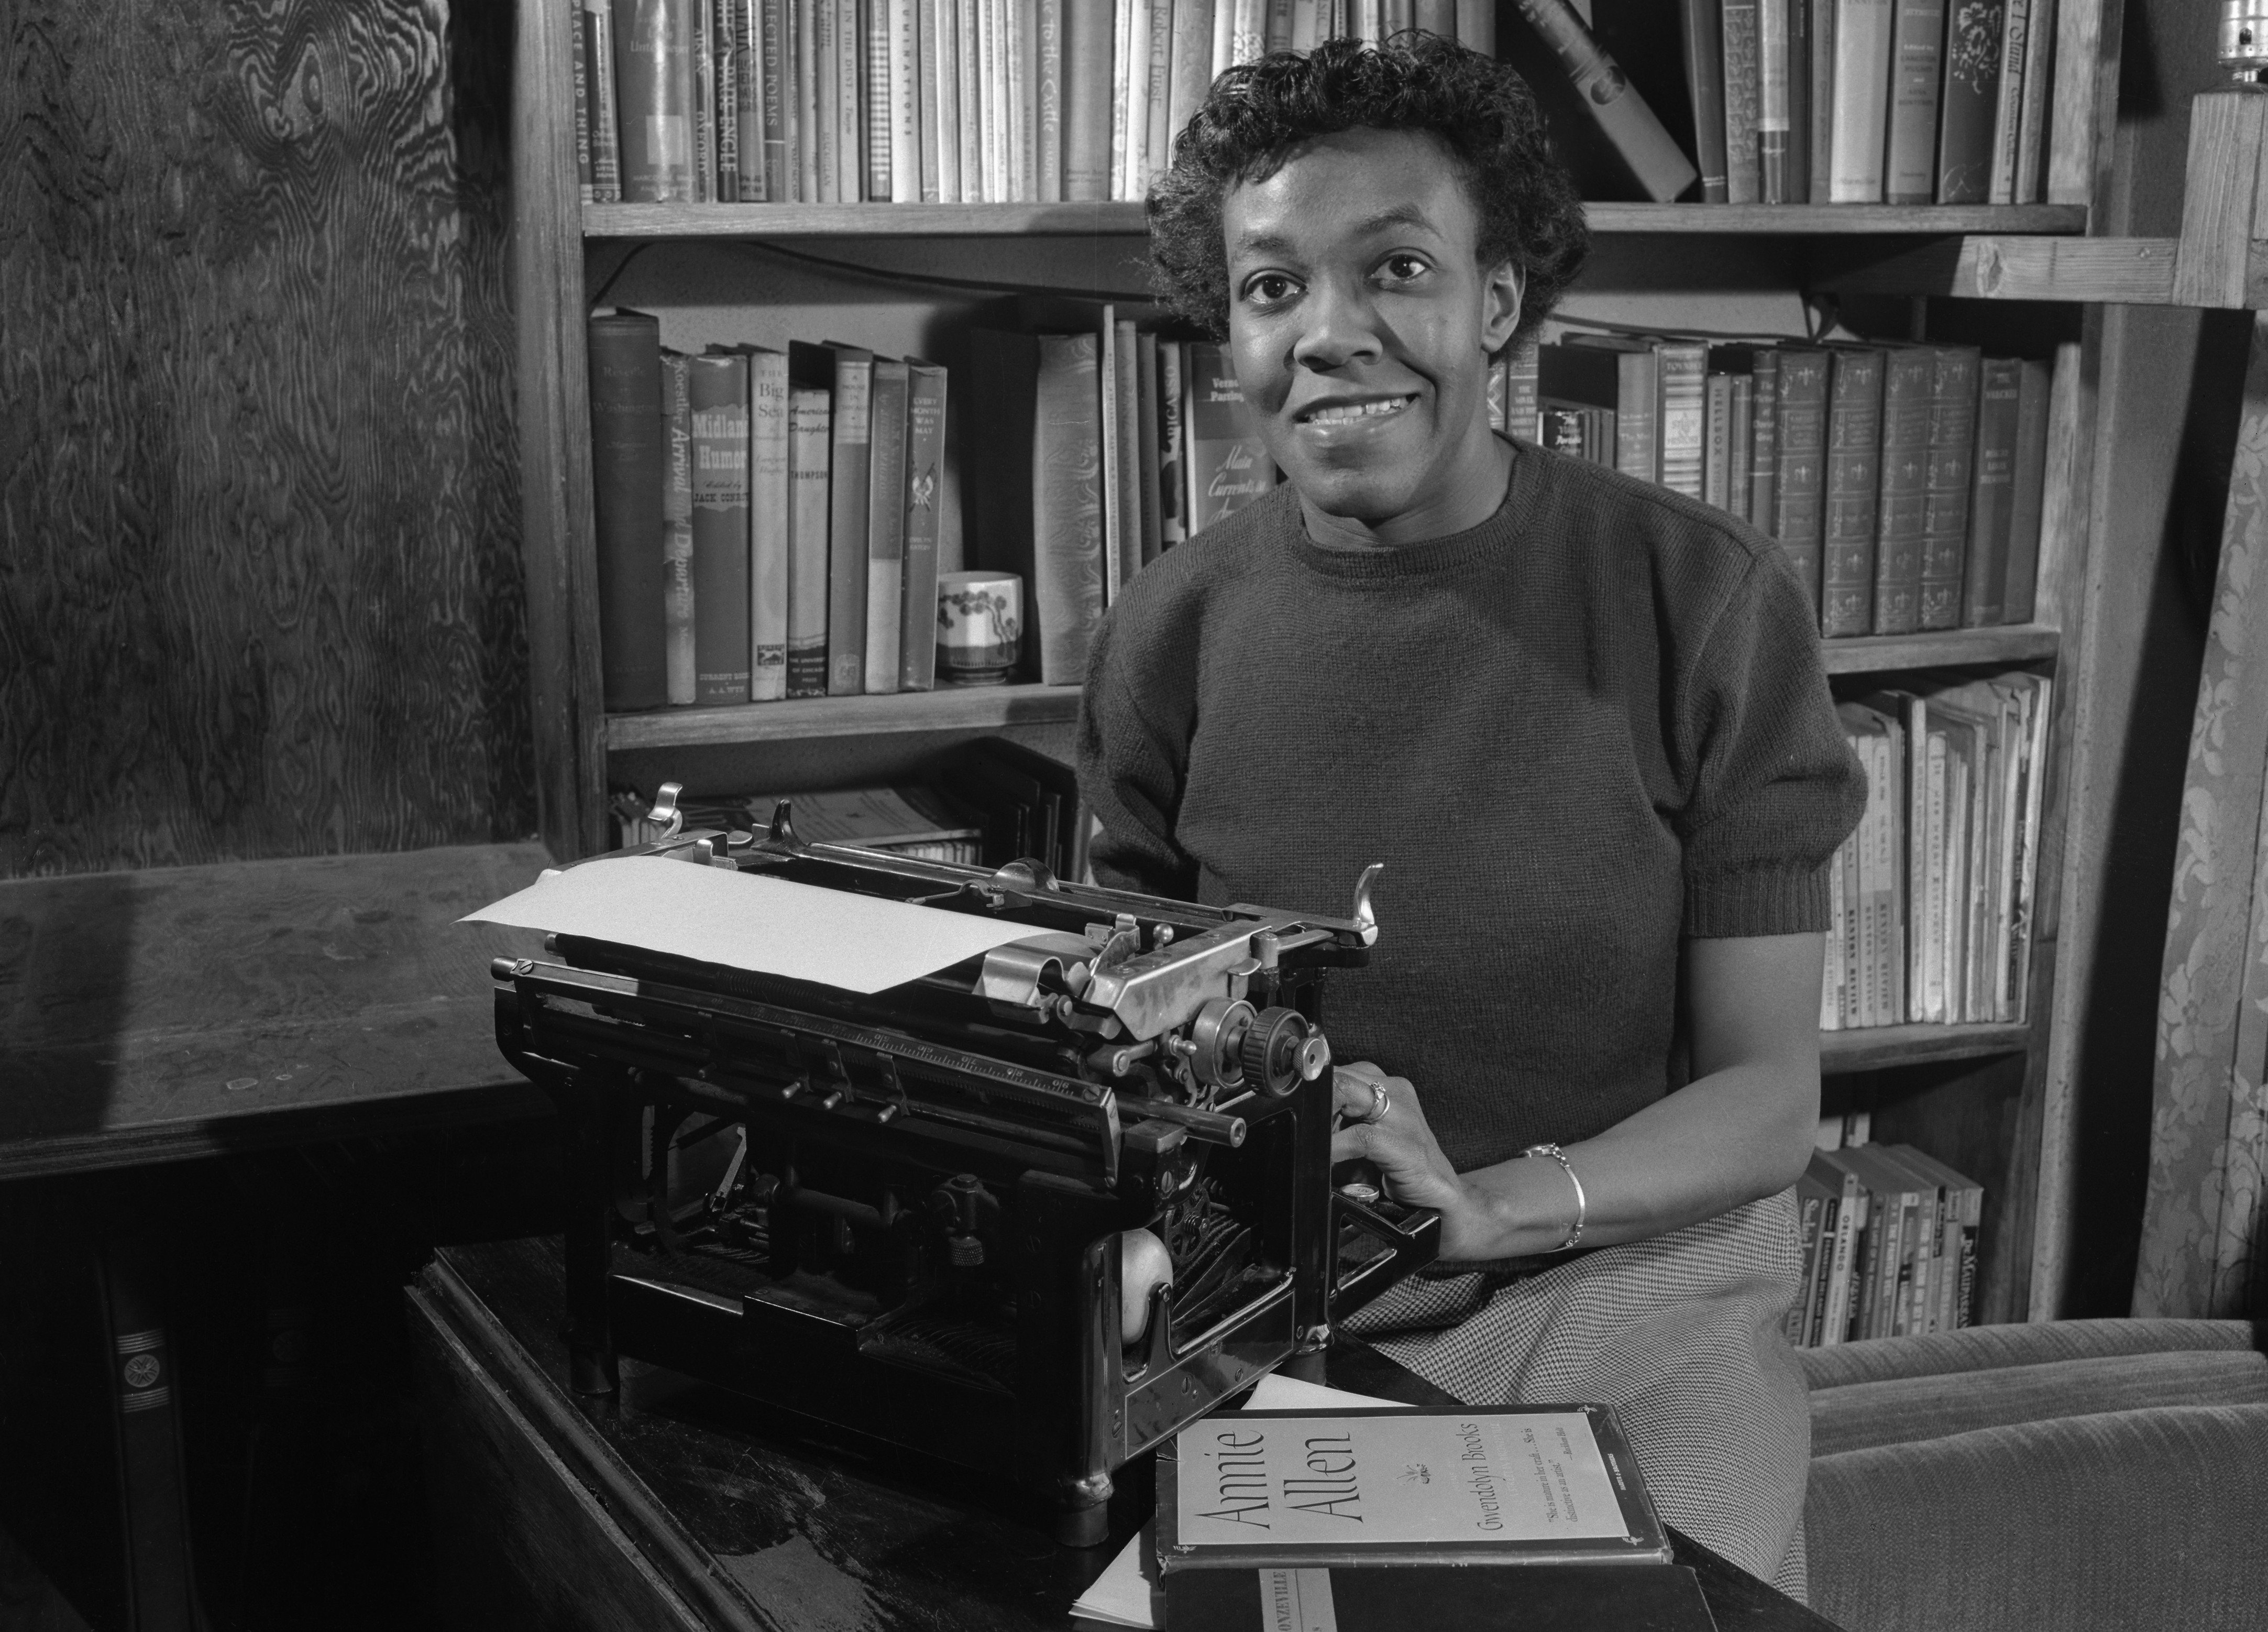 https://i0.wp.com/cdn.history.com/sites/2/2014/01/gwendolyn_brooks.jpg